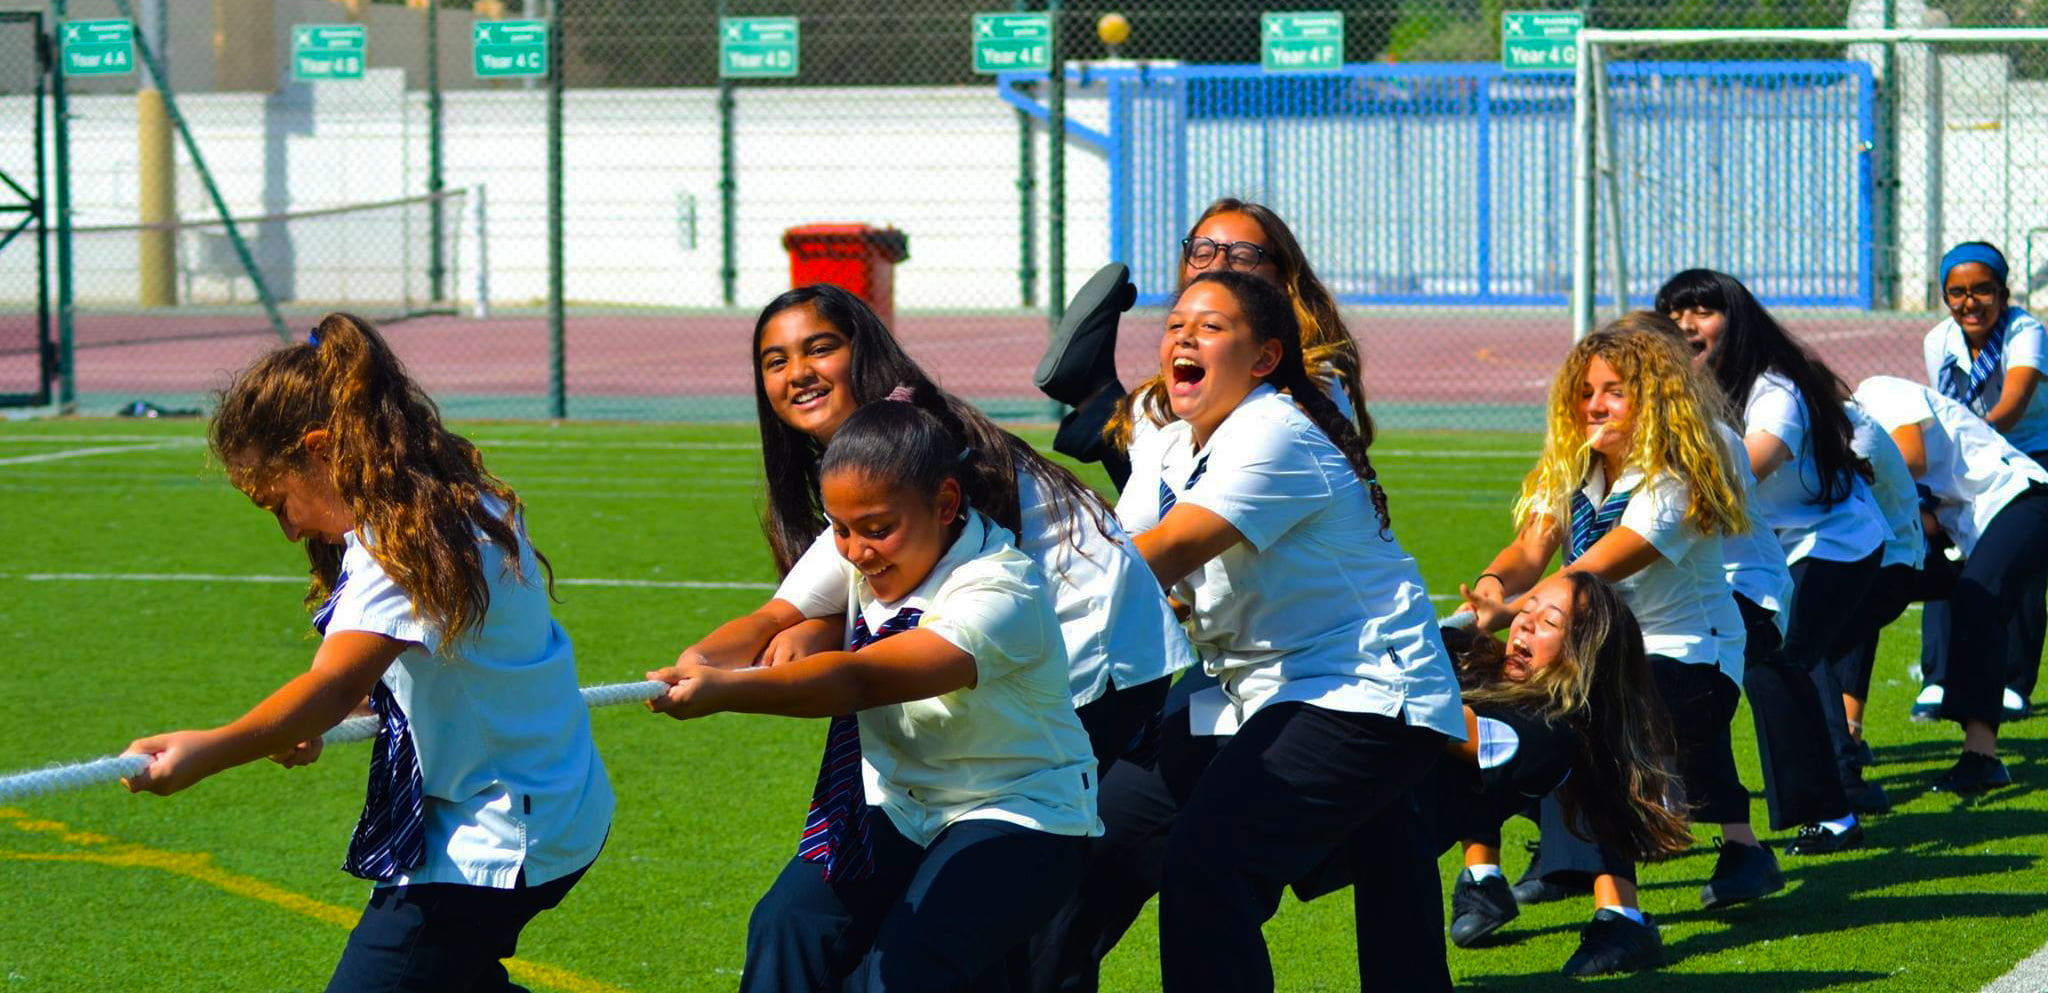 Sporting photograph of girls at GEMS Wellington International Dubai competing in a Tug of War competition